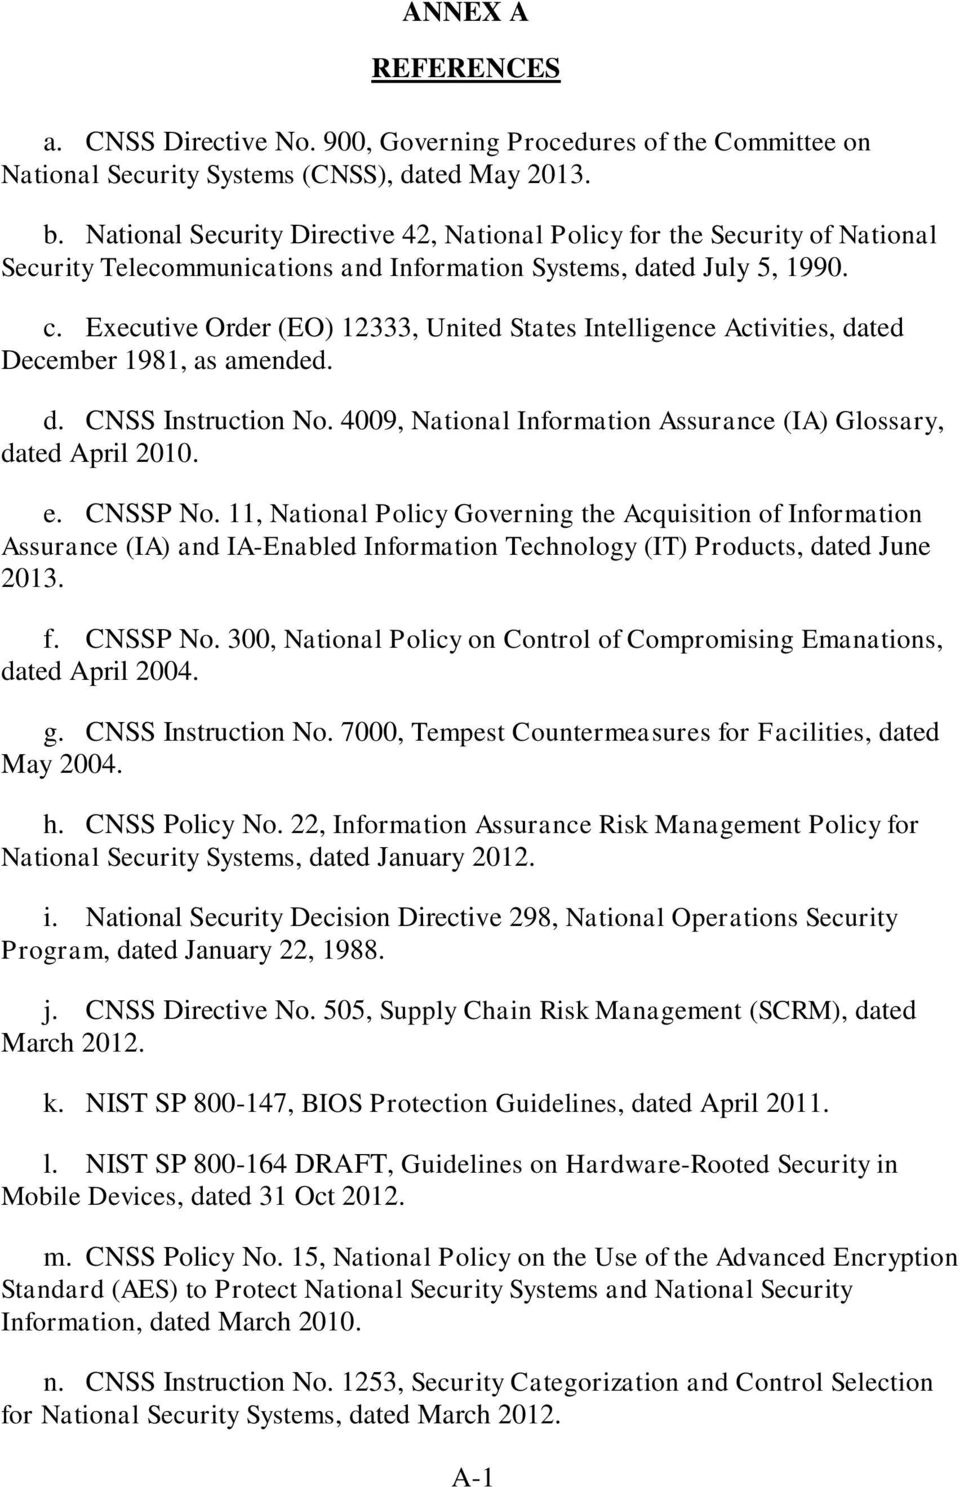 Executive Order (EO) 12333, United States Intelligence Activities, dated December 1981, as amended. d. CNSS Instruction No. 4009, National Information Assurance (IA) Glossary, dated April 2010. e.